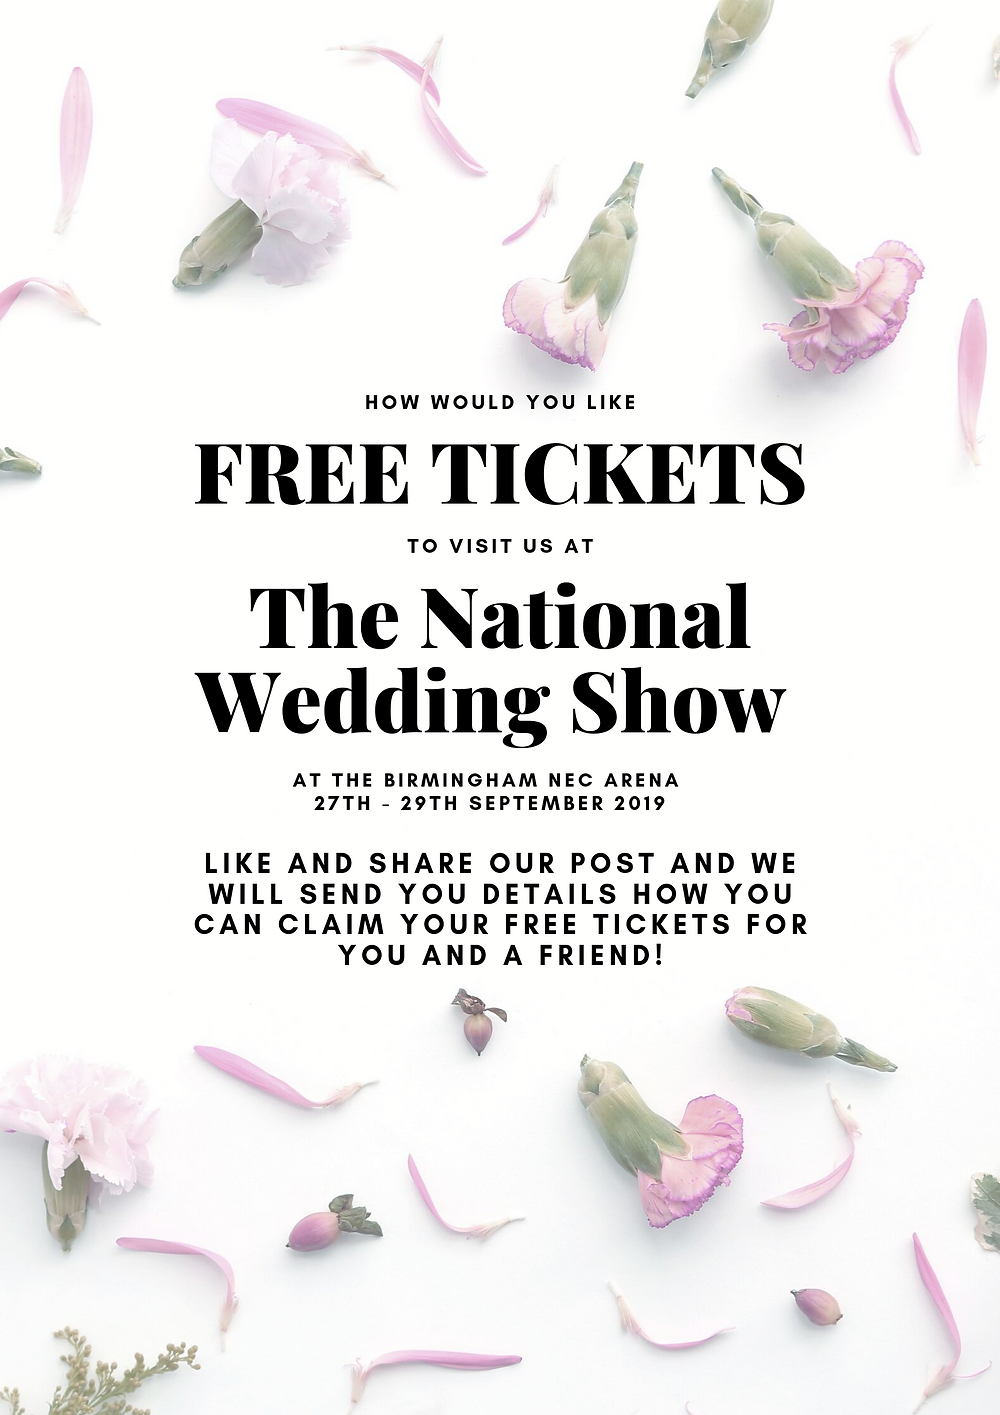 National wedding show Birmingham